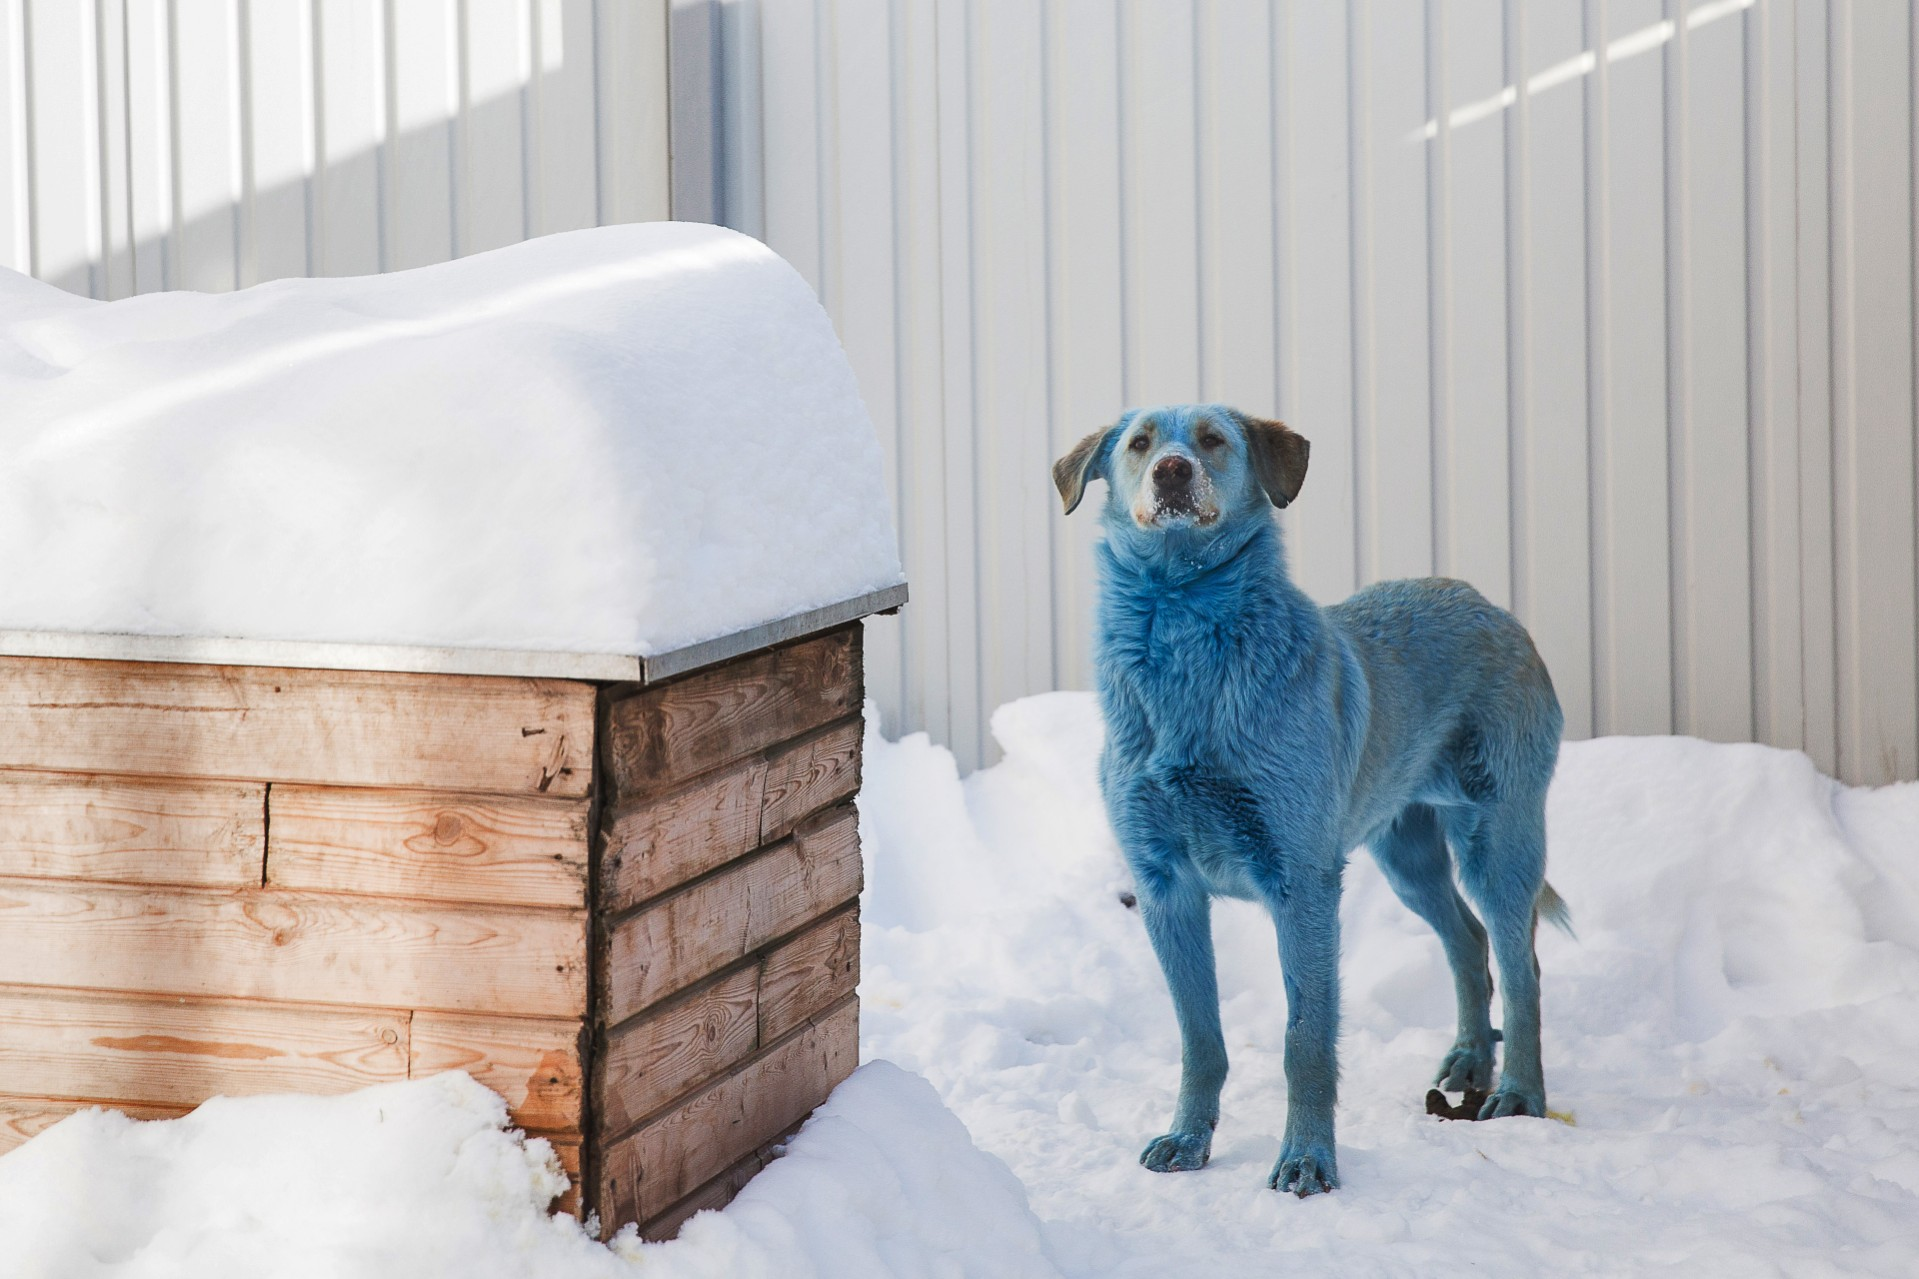 One of the dogs found in the city of Dzerzhinsk, after being tested at a veterinary clinic in Nizhny Novgorod. Photo: Mikhail SoluninTASS via Getty Images